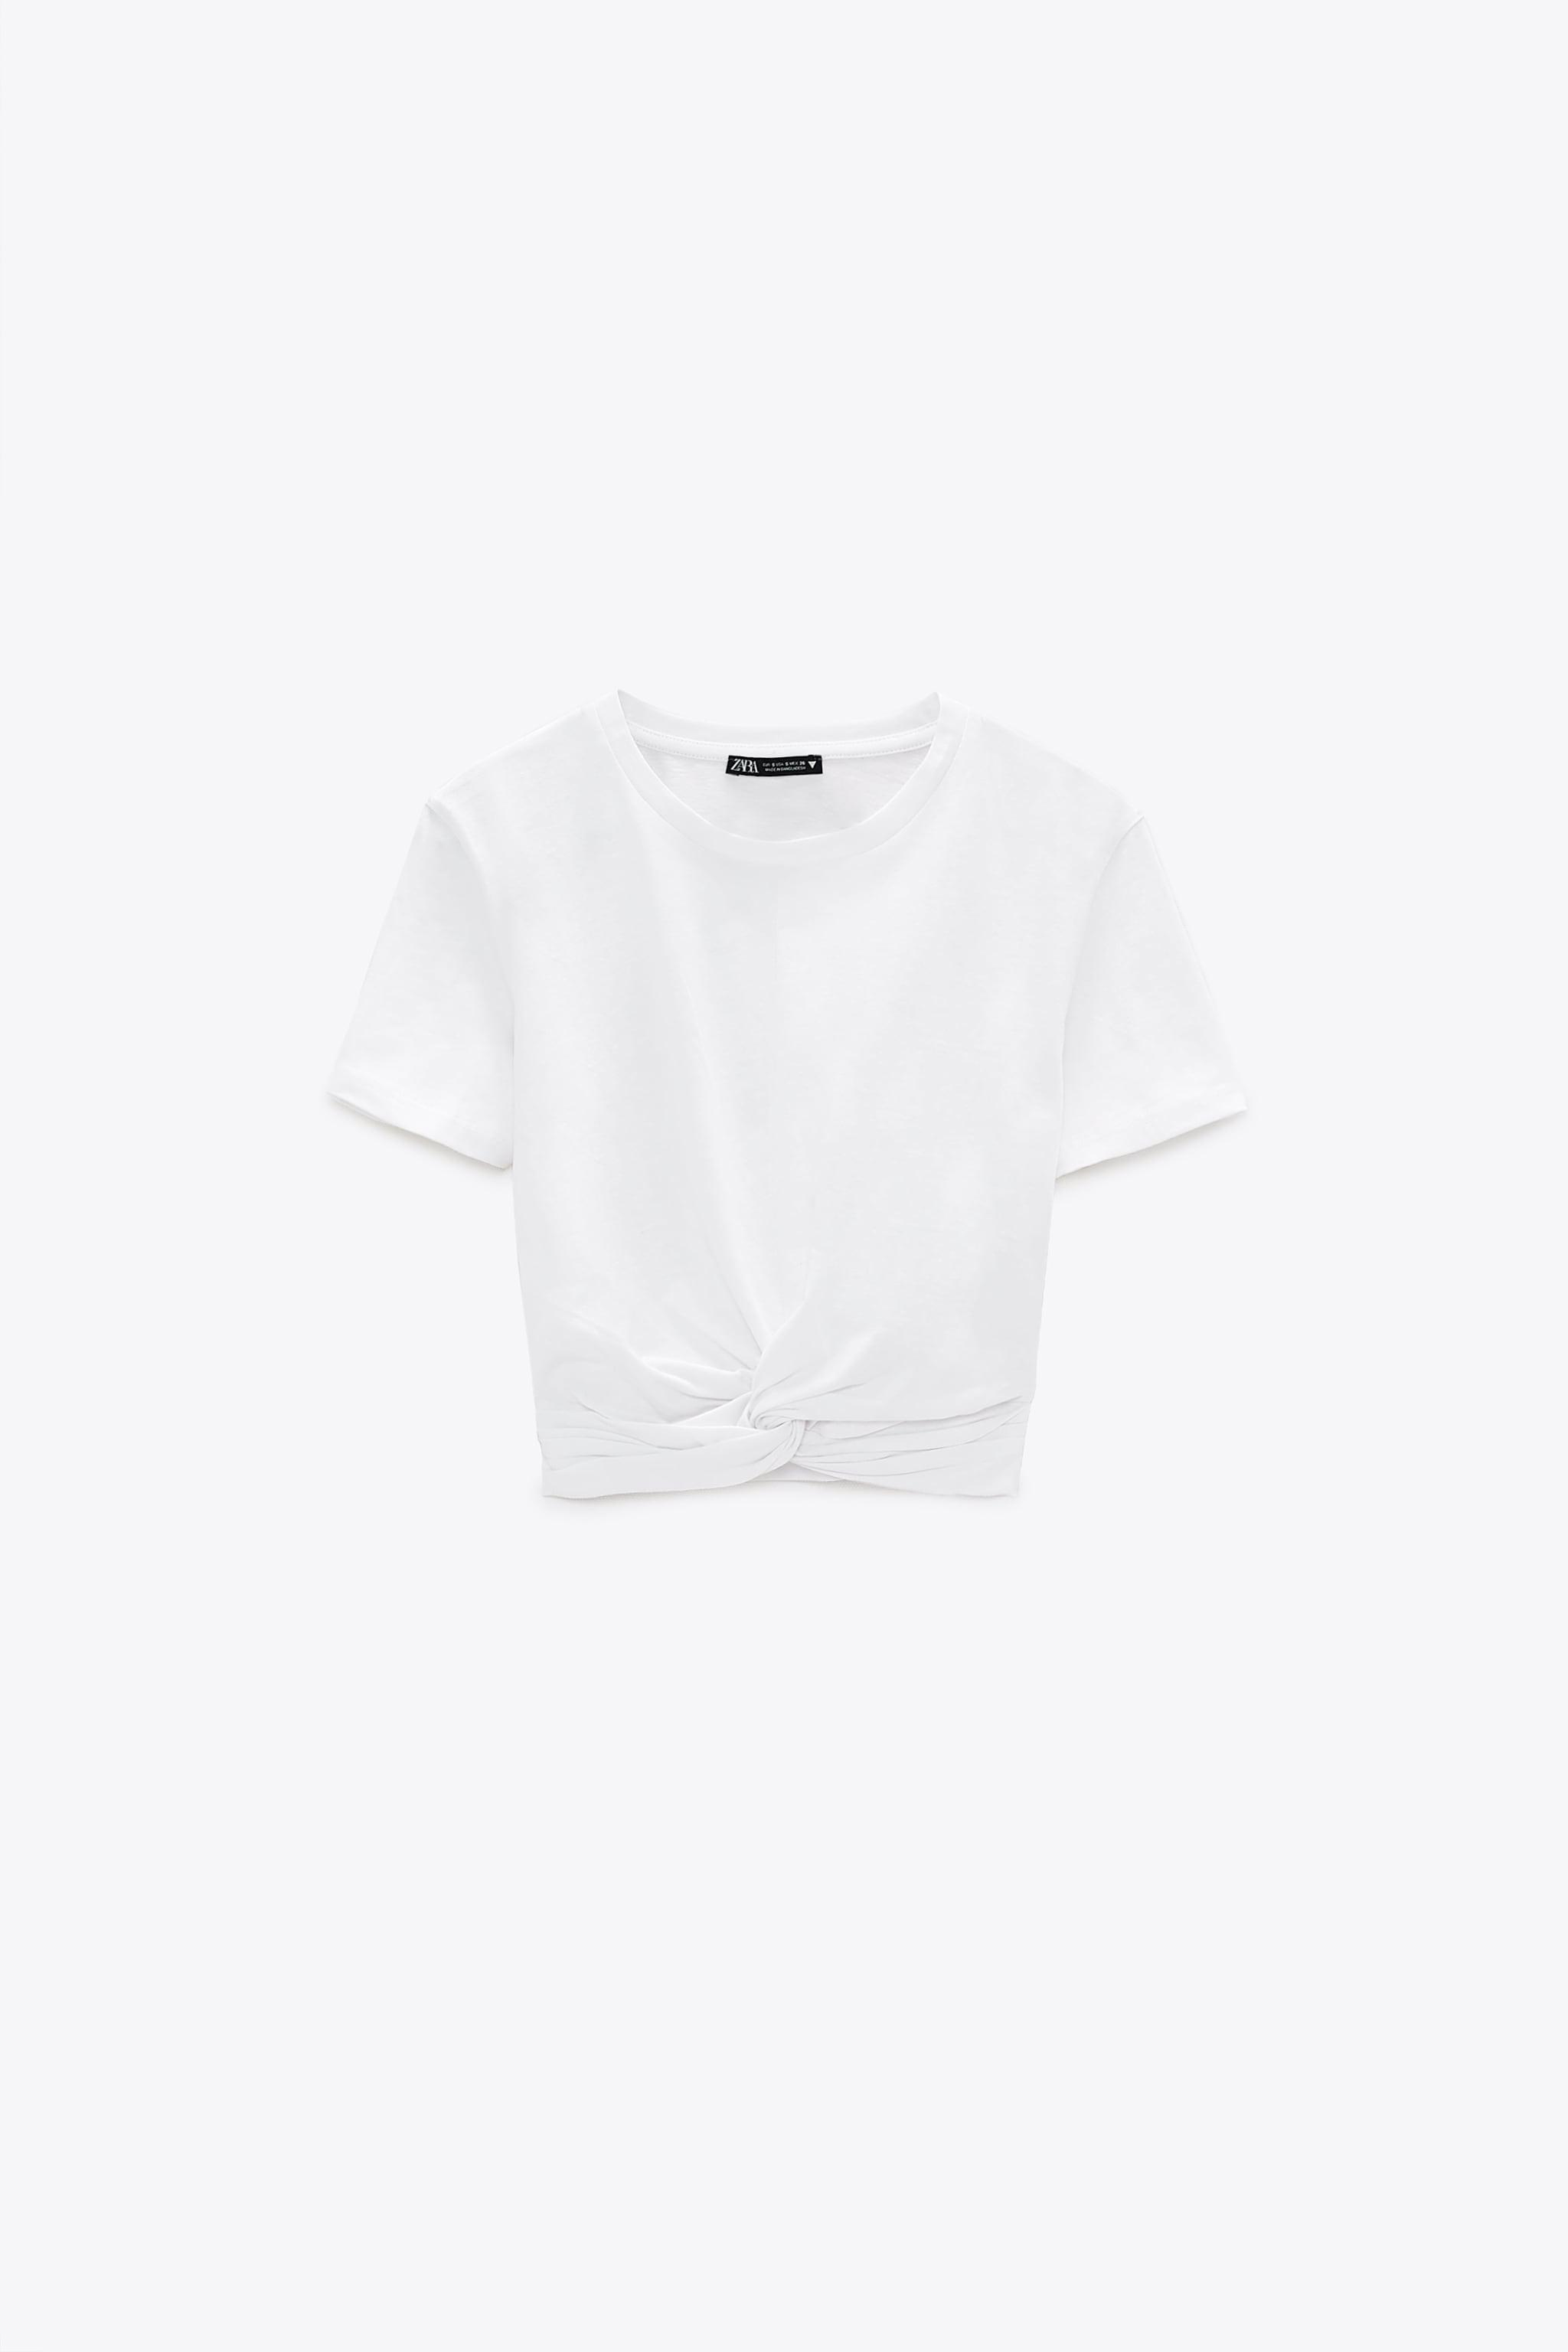 KNOTTED T-SHIRT 1